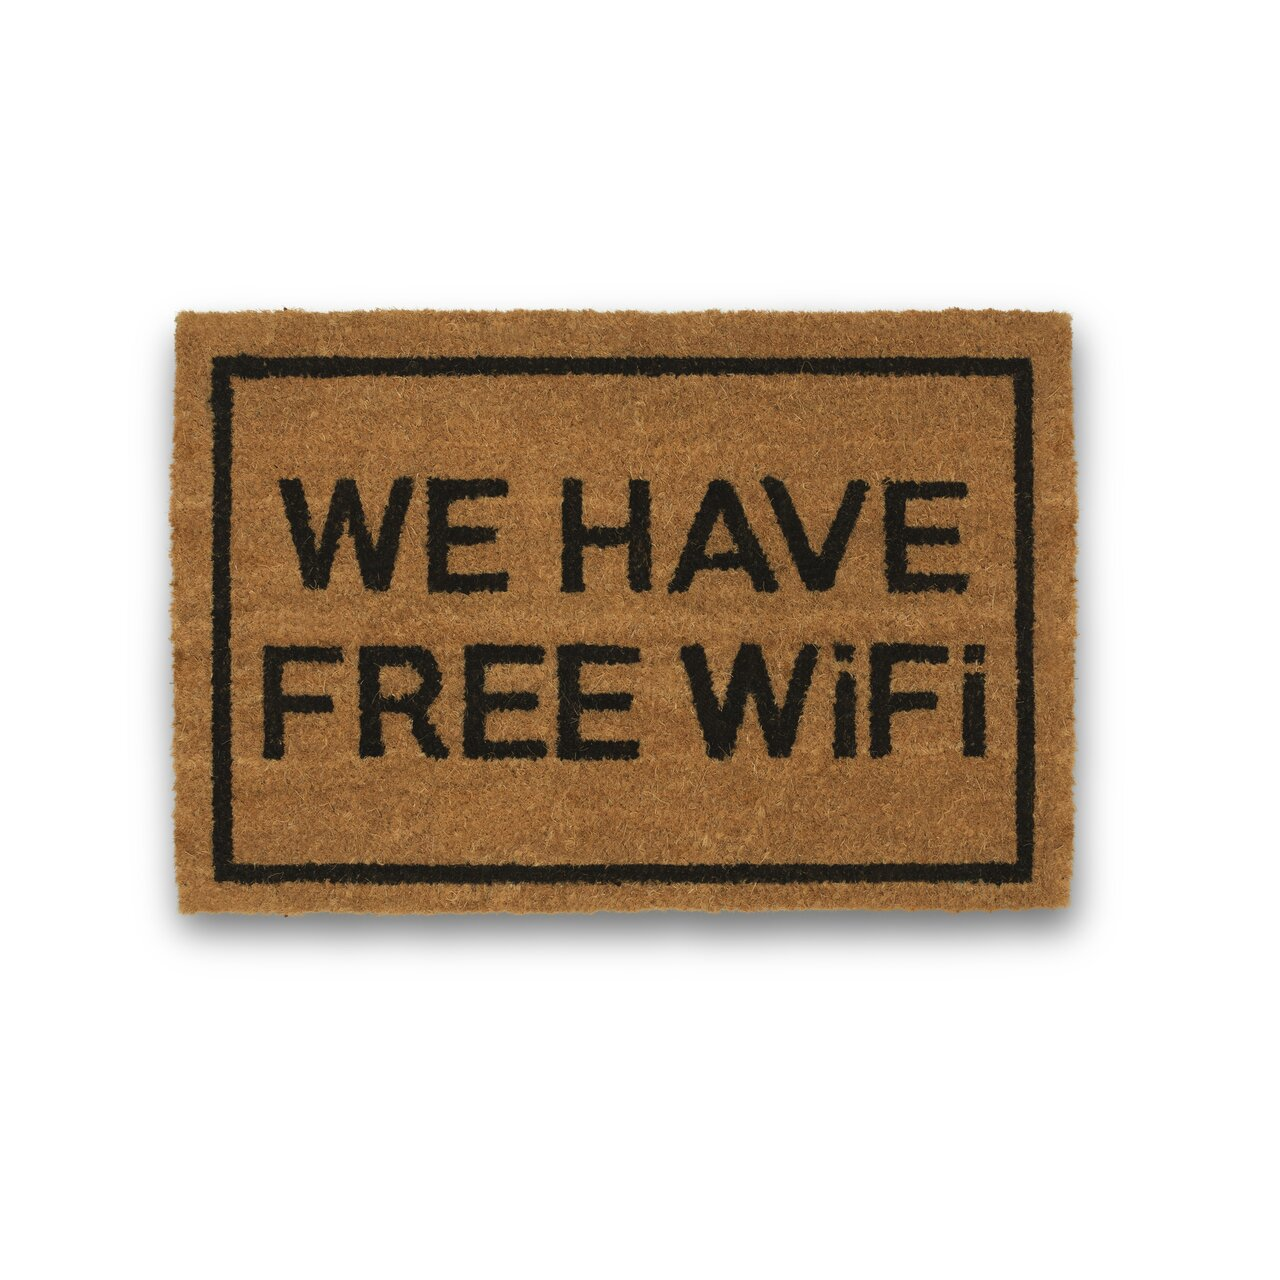 Clever doormats we have free wifi coir doormat wayfair - Clever doormats ...